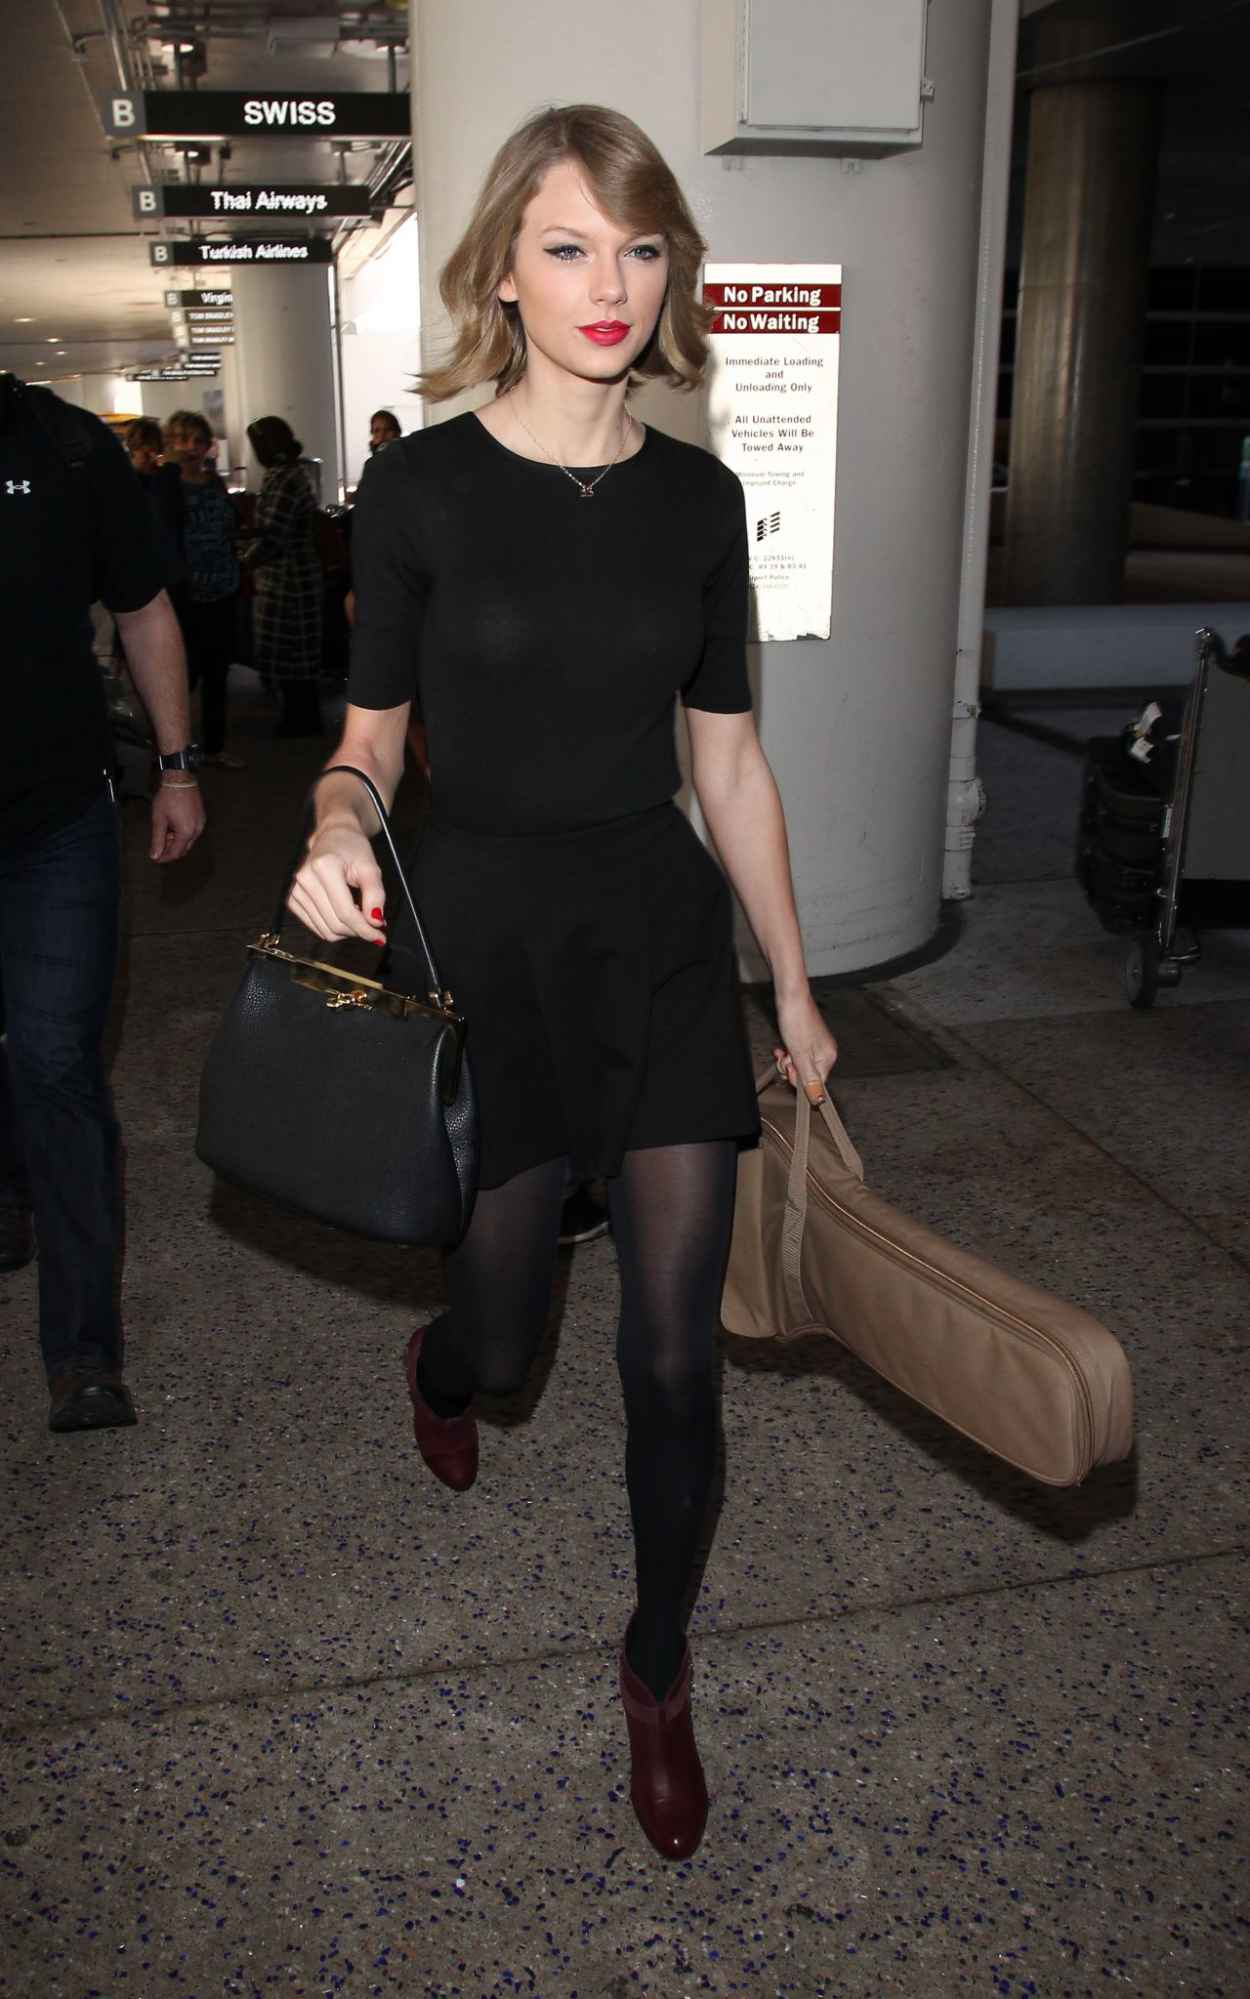 Taylor Swift New Hair Style - LAX Airport - February 2015-1